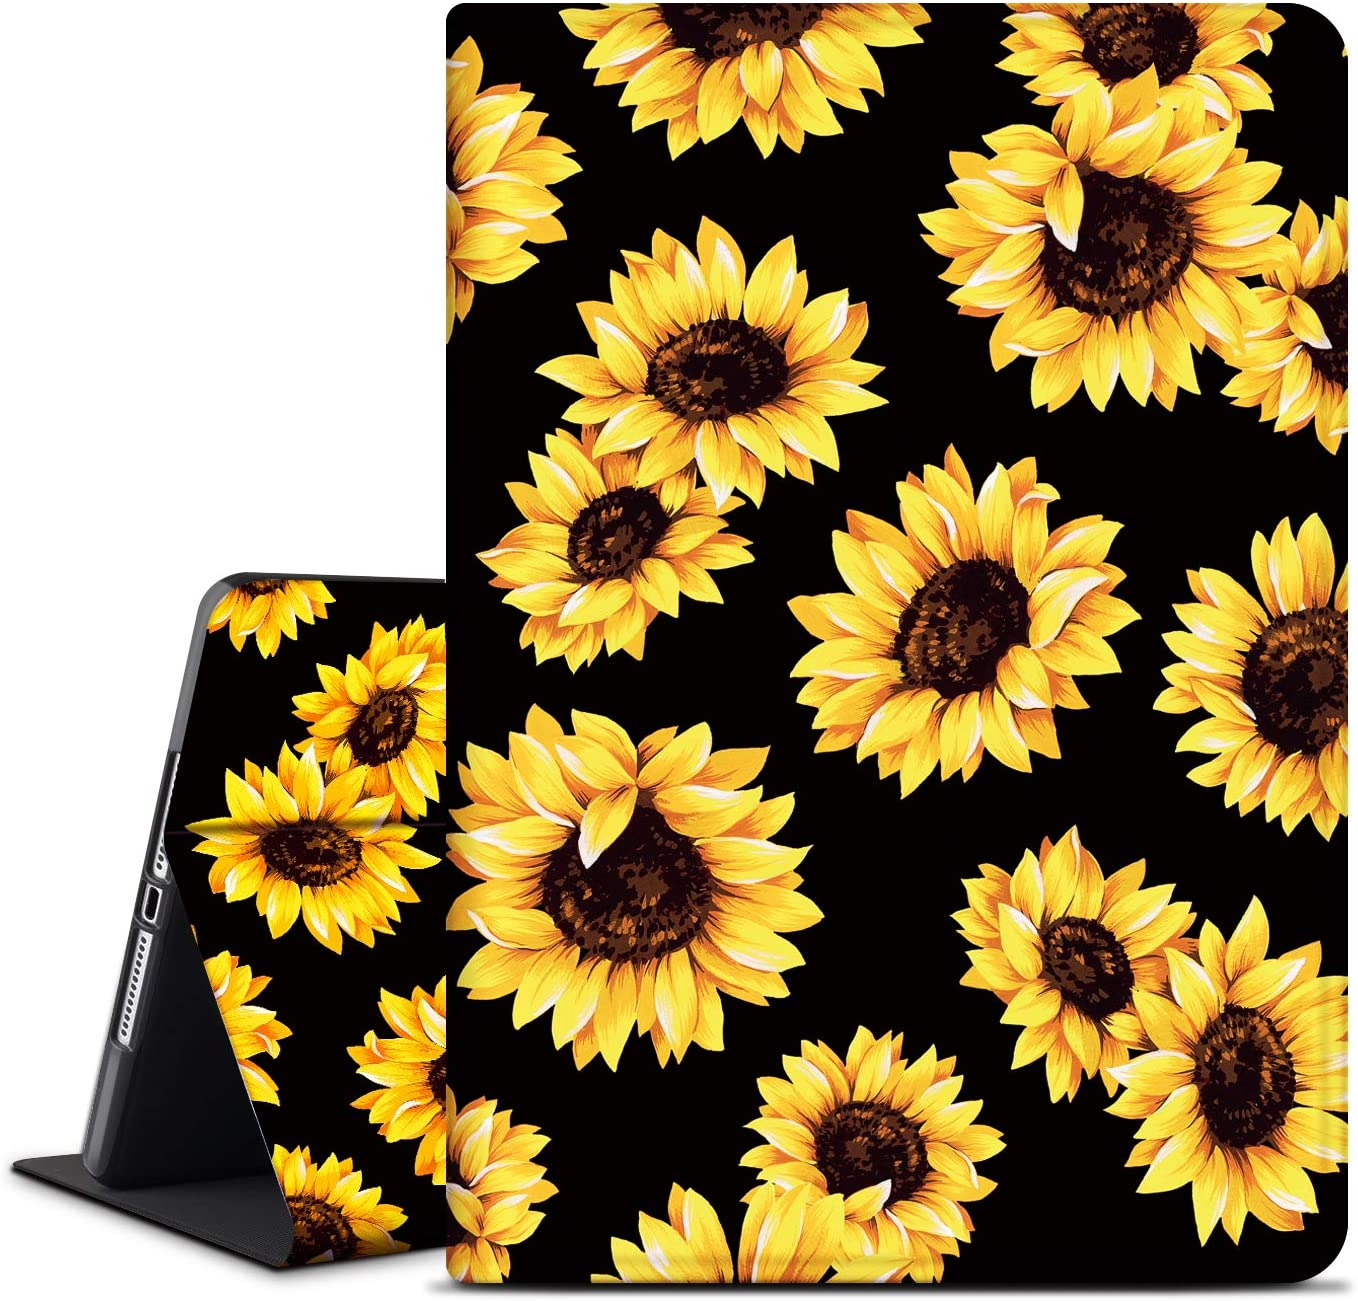 INSSISAIN Case for iPad 8th Generation 2020 /iPad 7th Generation 2019 10.2 Inch, Multi-Angle Viewing Stand Shell, PU Leather Protective Cover with Auto Sleep for 10.2